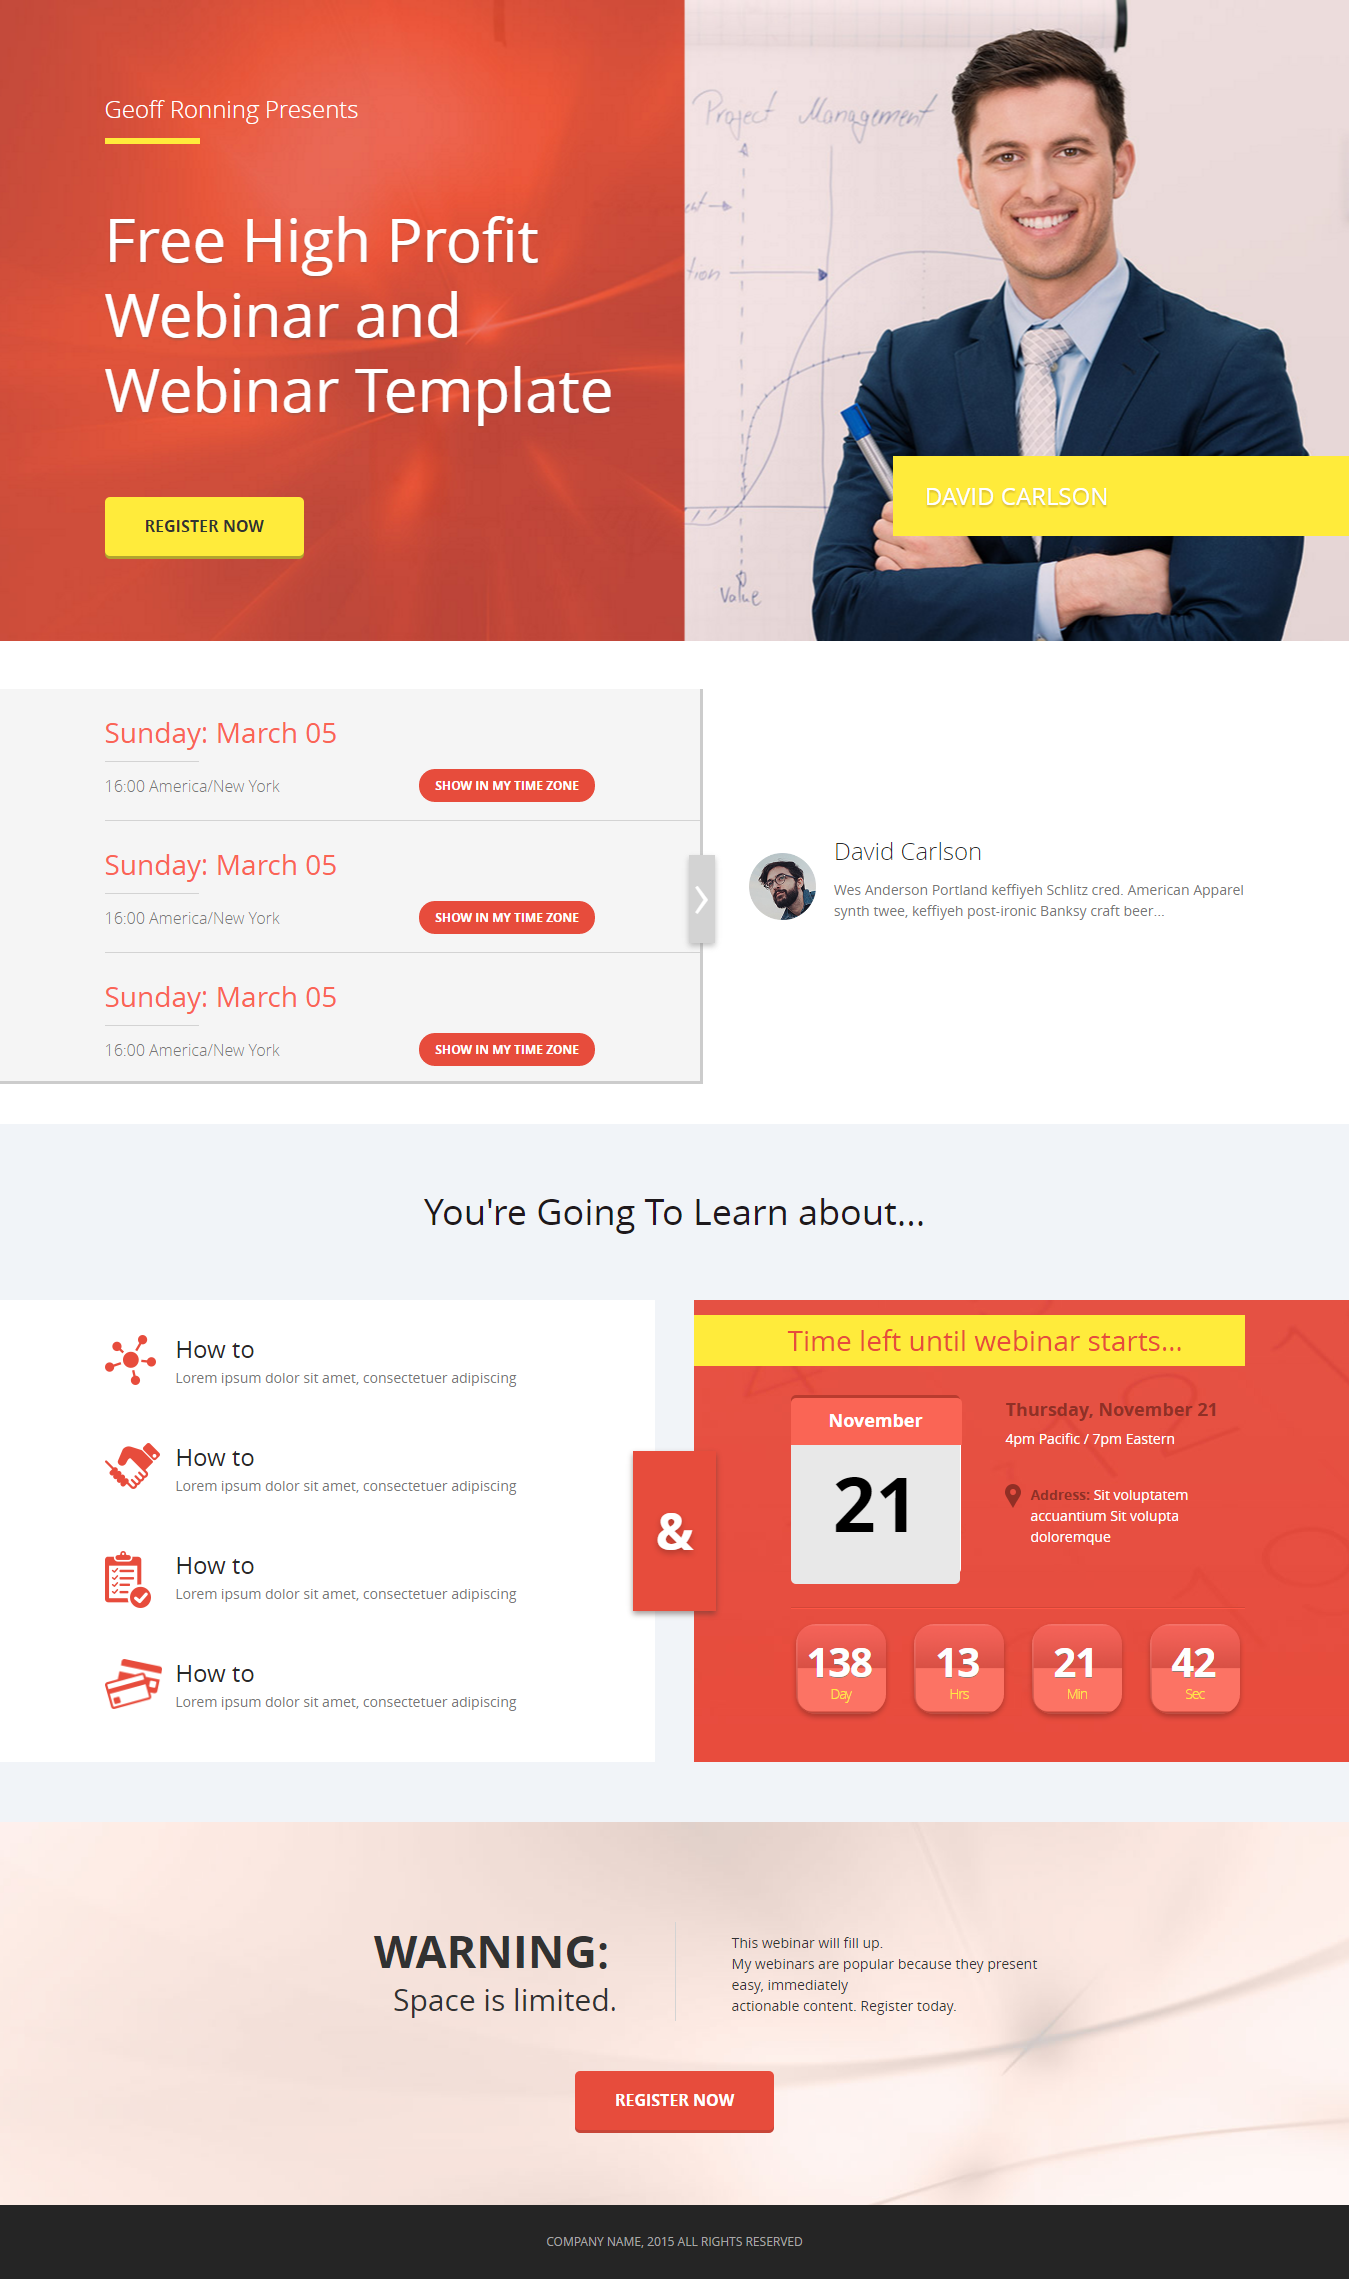 SS_Webinar_Registration_Page_Templates_pdf__page_3_of_32_